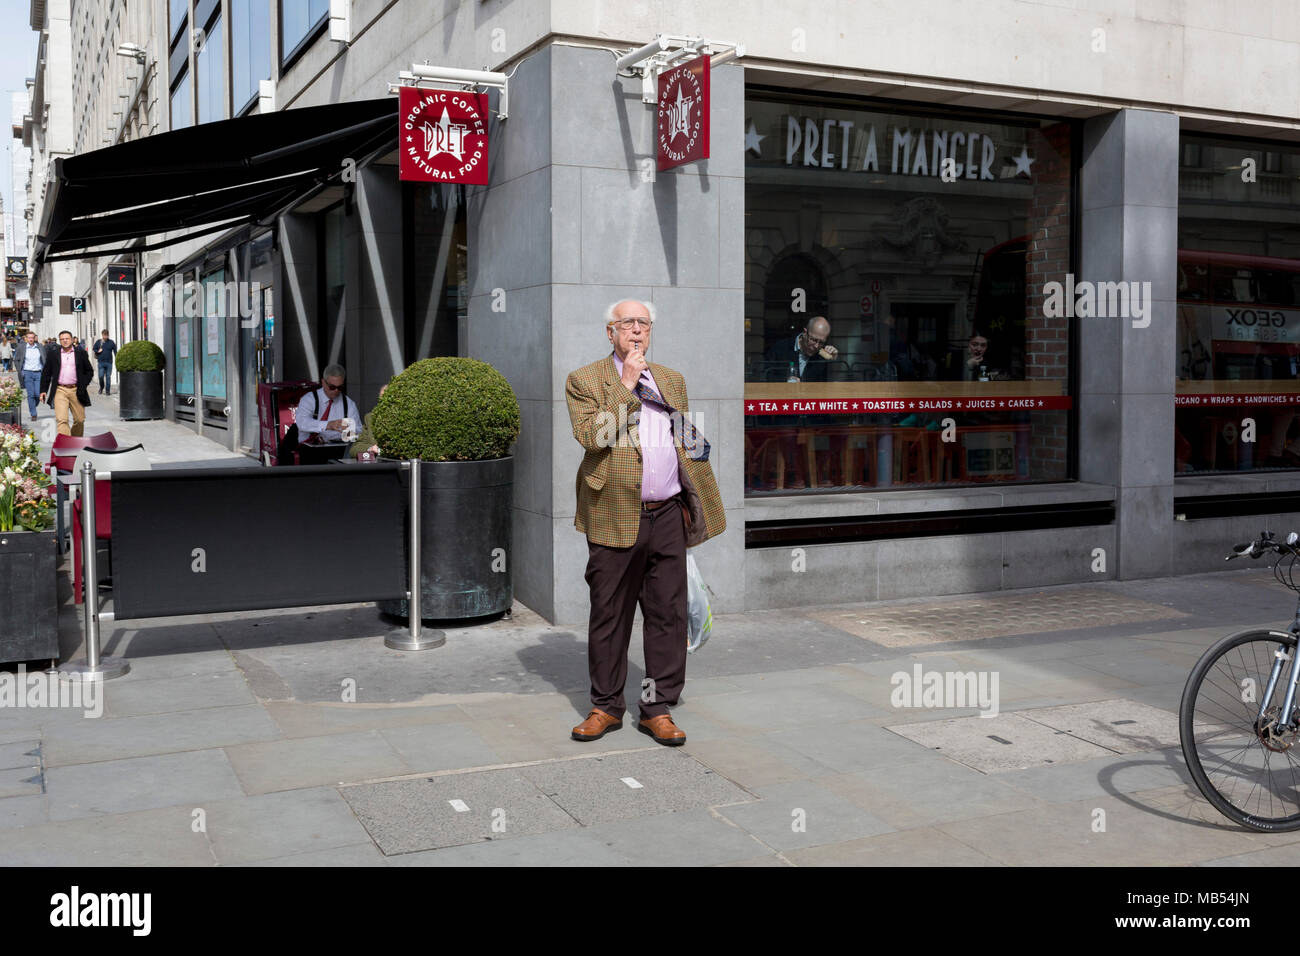 An elderly man vapes on the corner of a central London street, on 6th April 2018, in London, England. - Stock Image